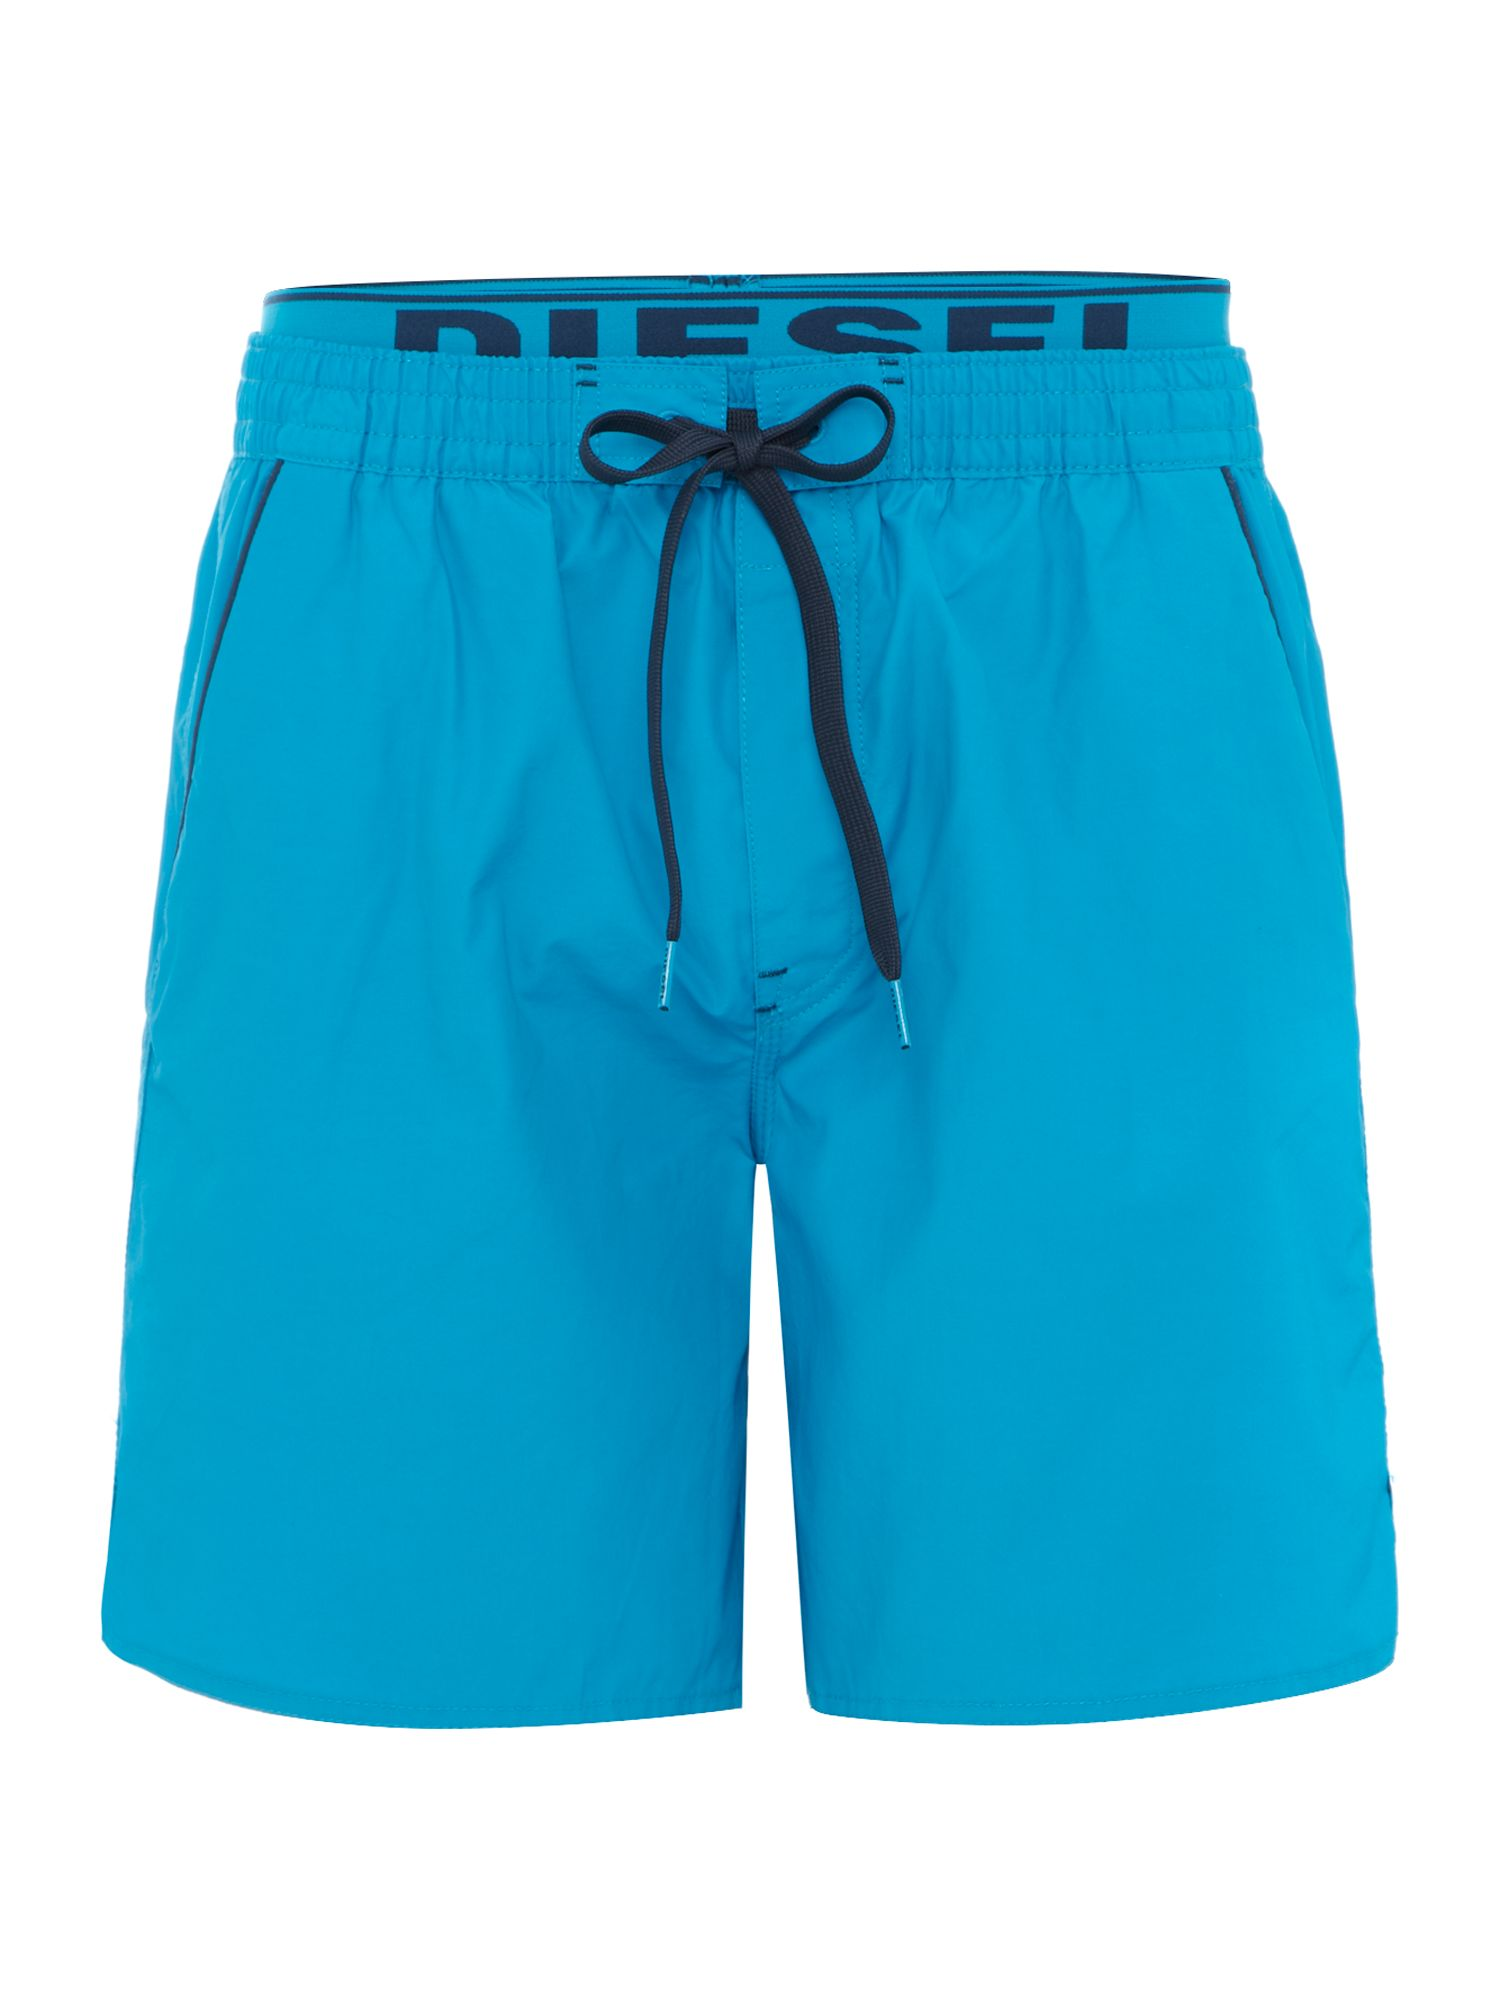 Mid length swim short with waistband